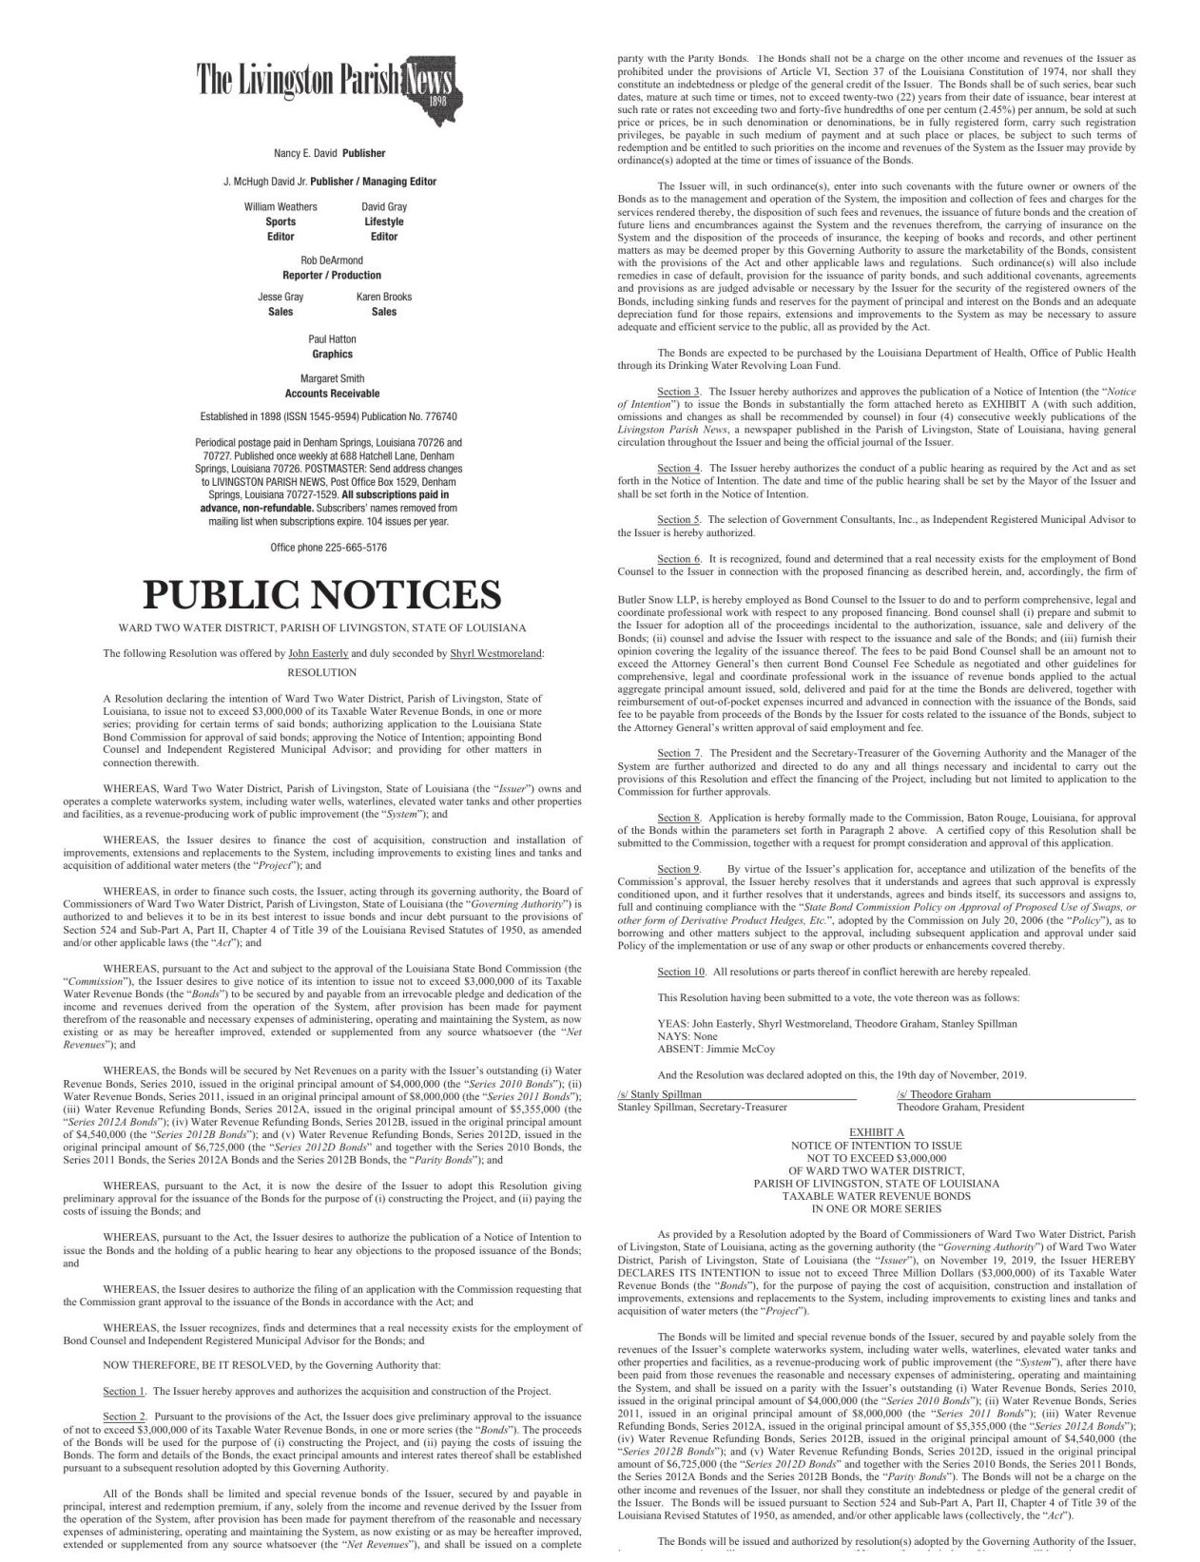 Public Notices published November 28, 2019